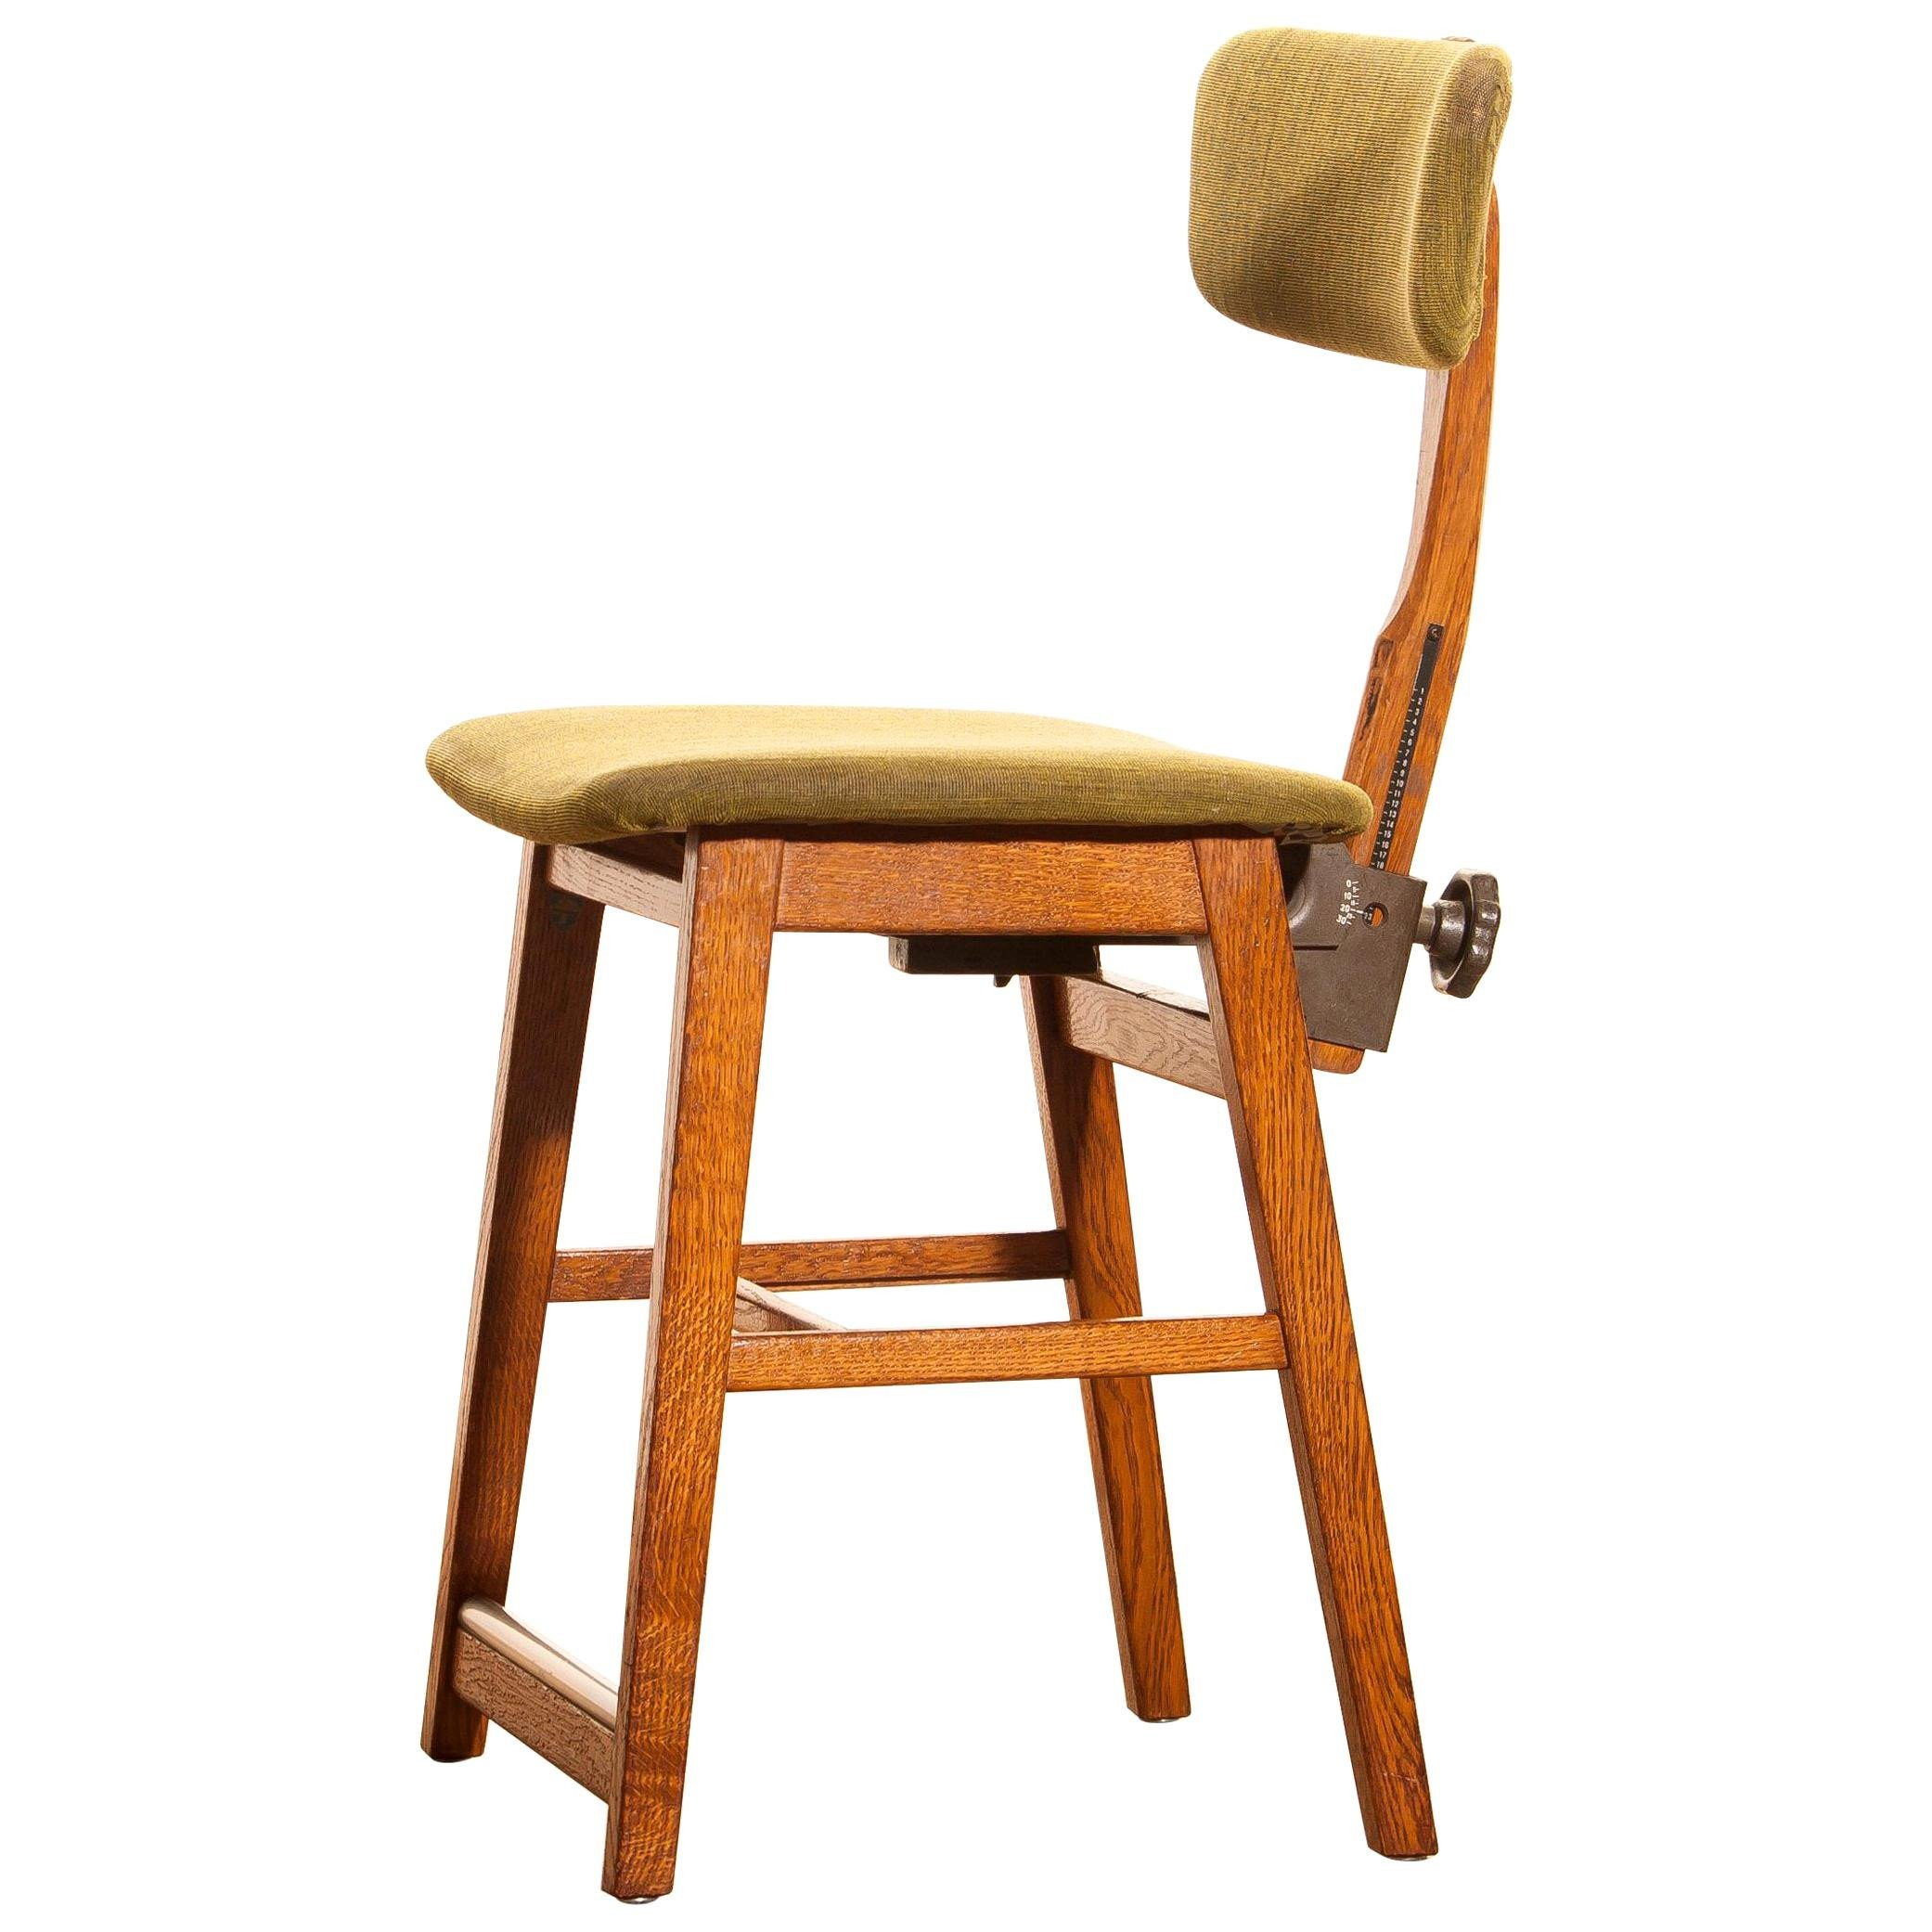 1940s Bedroom Furniture Styles Fresh 1940s Oak and Wool Desk Chair by 'tvidabergs Sweden for